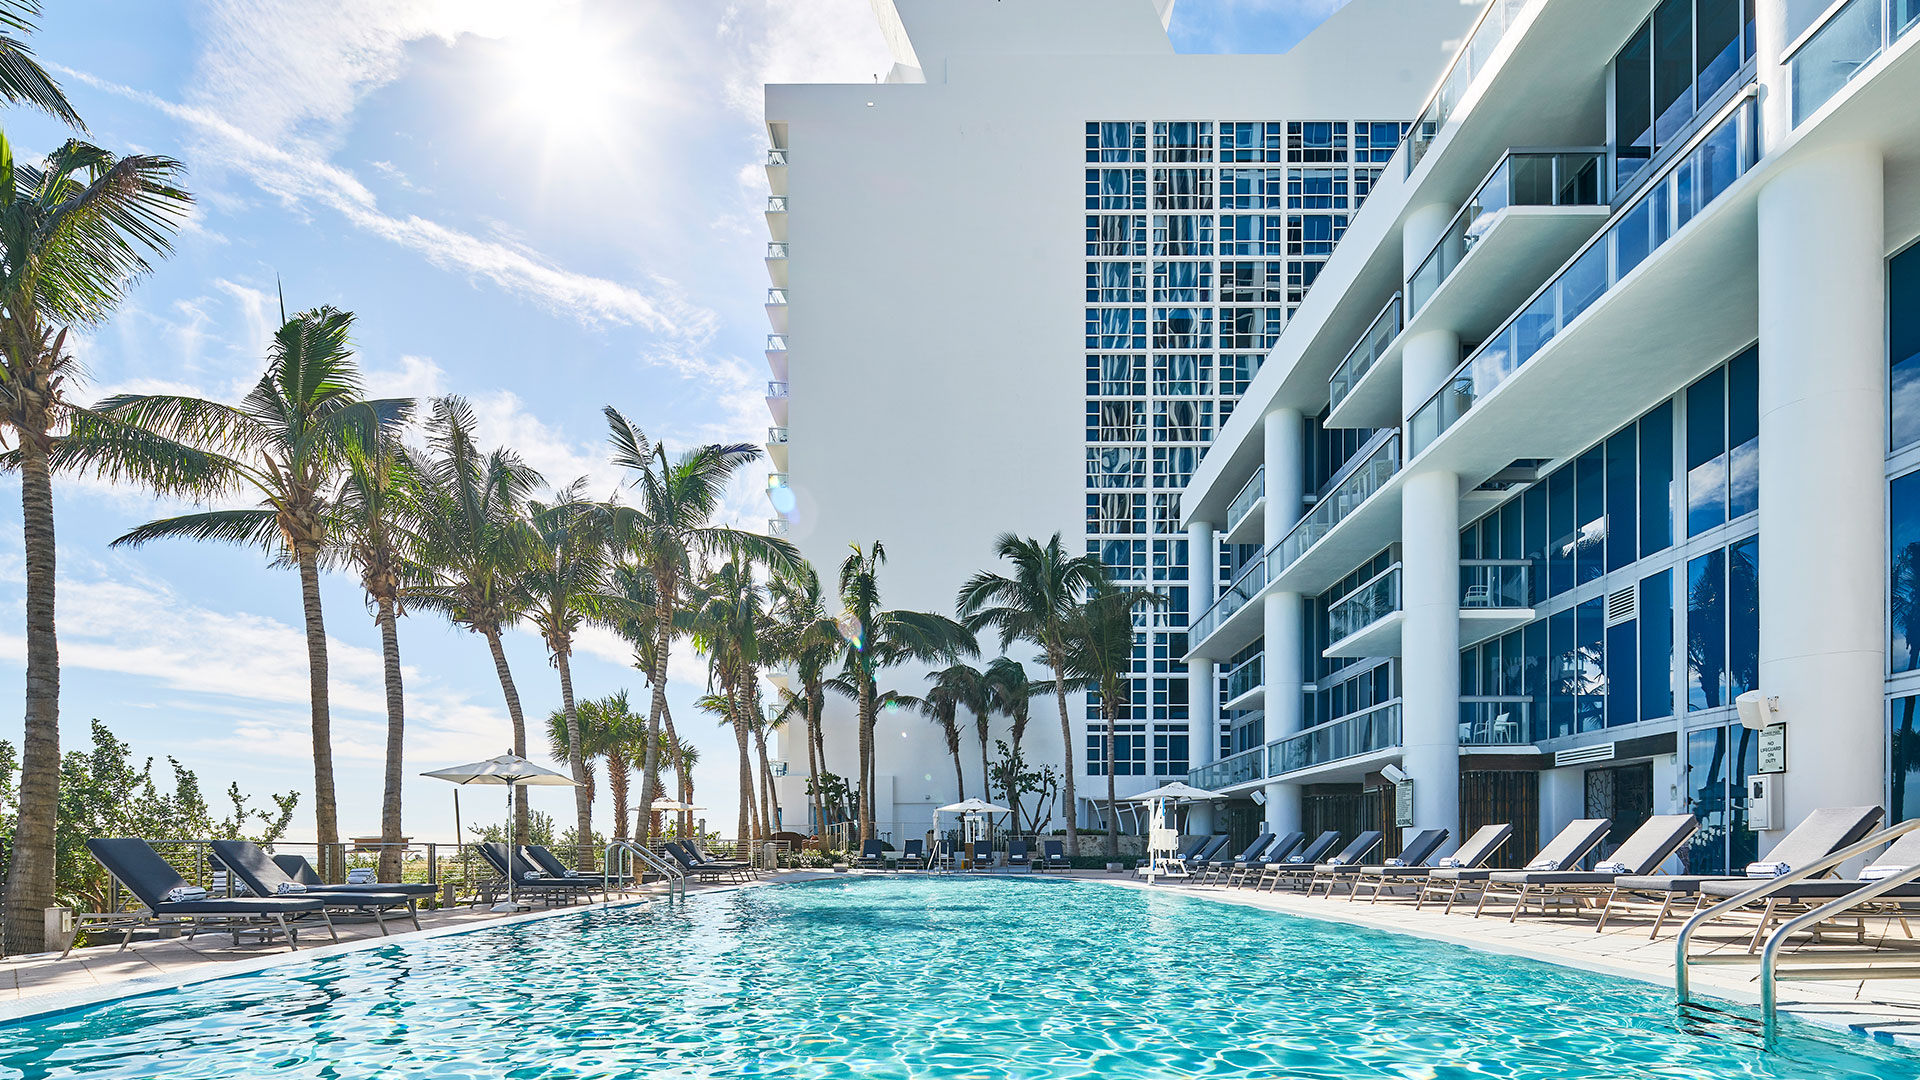 This Miami Resort Is Where You Should Go to Escape From it All